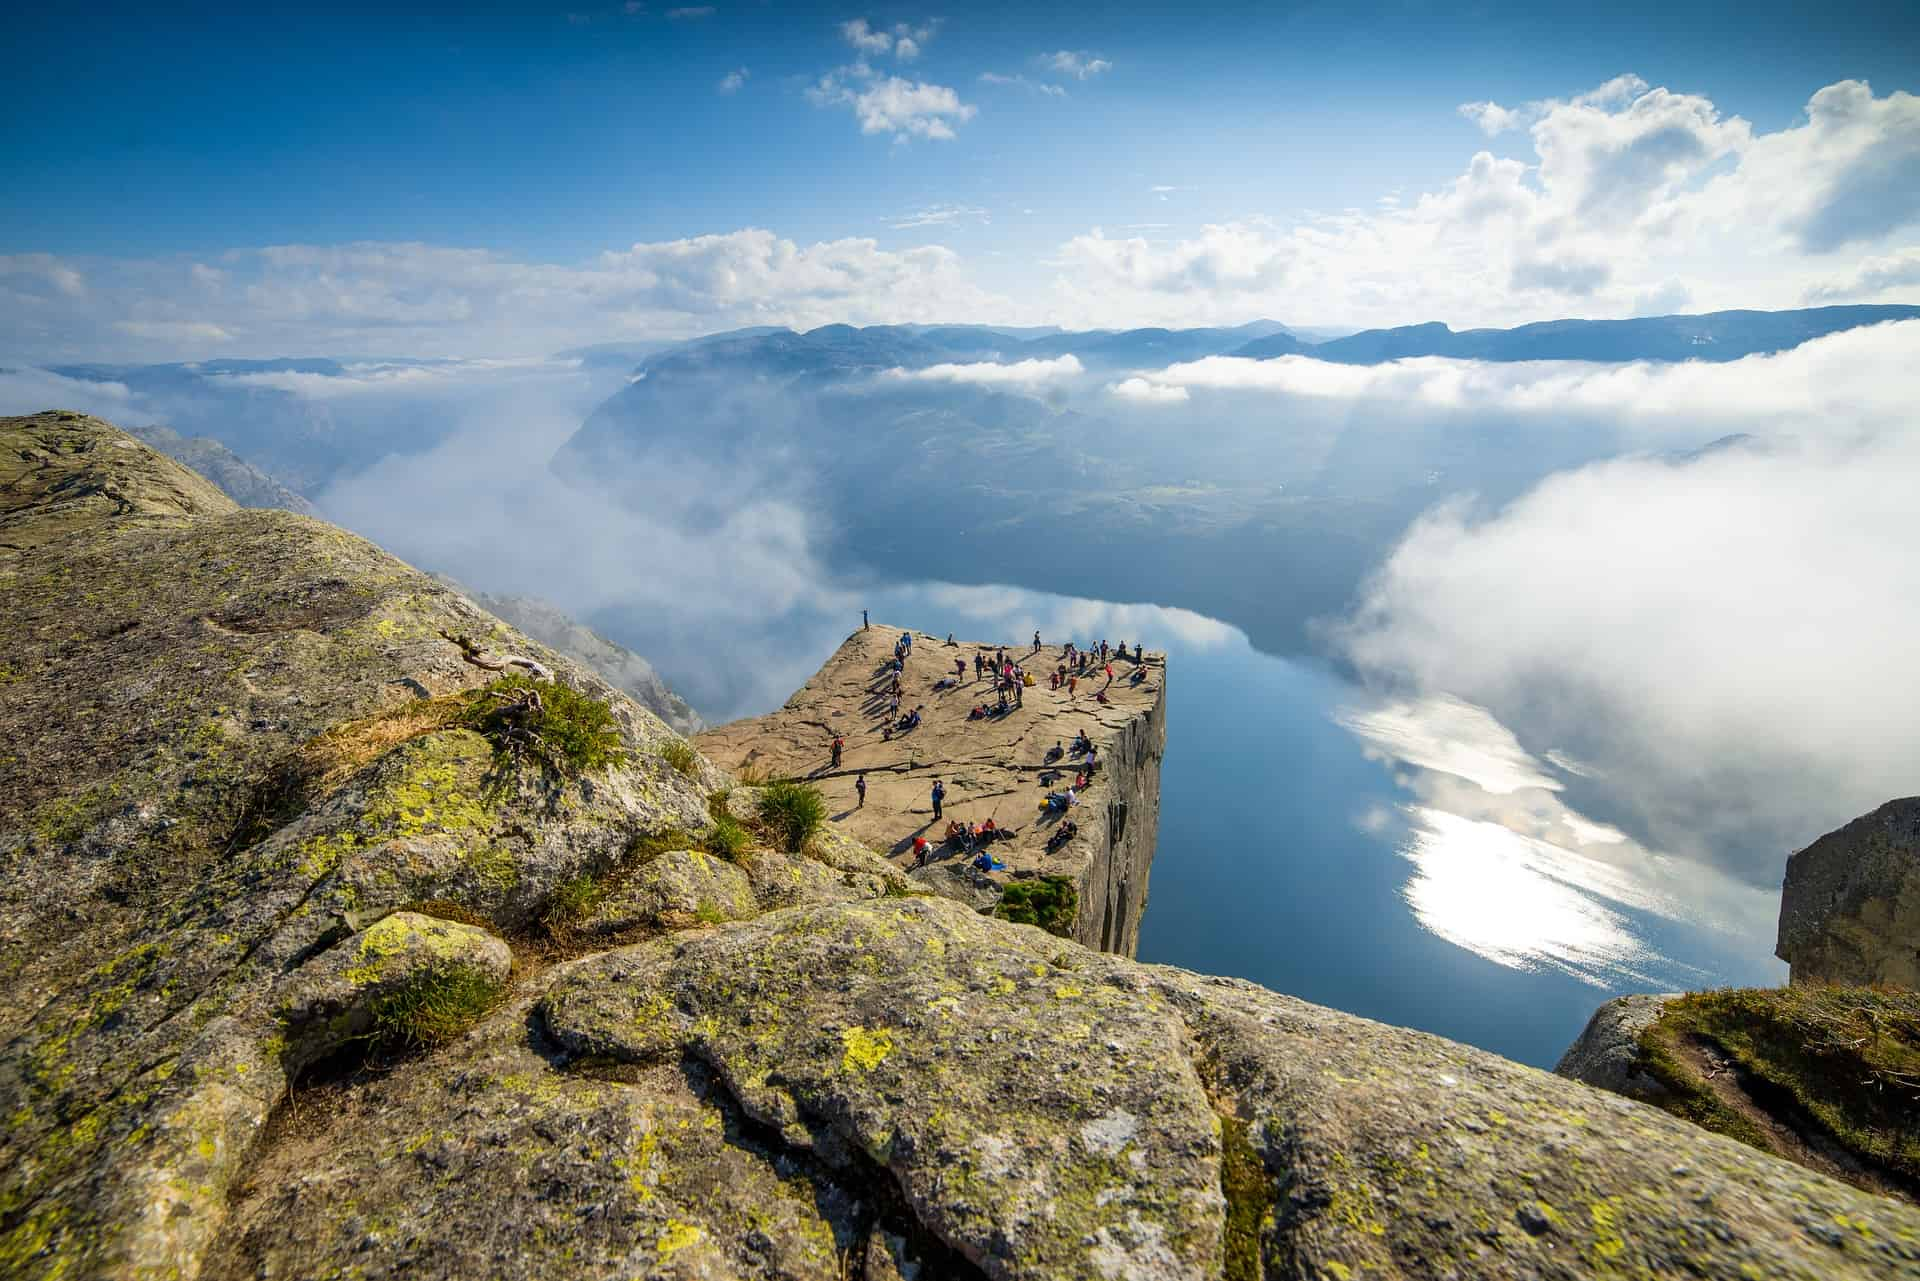 Preikestolen lies 604 meters above the Lysefjord and the journey up is one of the most famous mountain hiking routes in Norway.